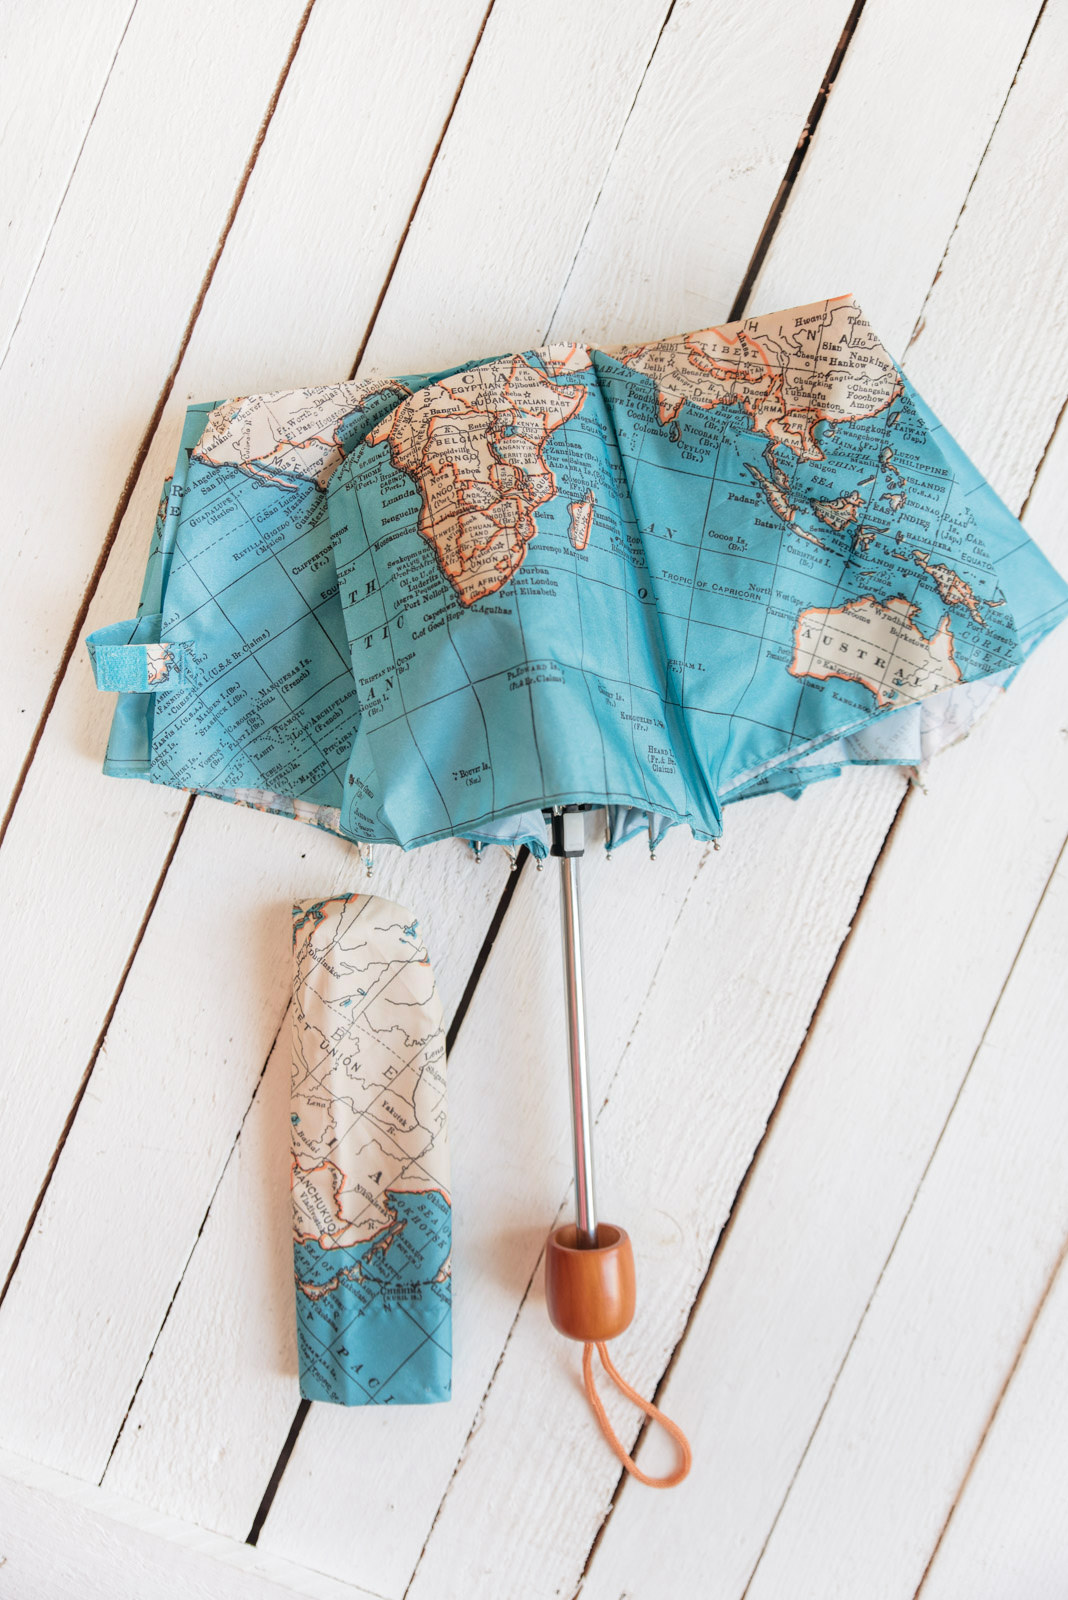 Blog-Mode-And-The-City-Lifestyle-Cinq-Petites-Choses-227-parapluie-mappe-monde